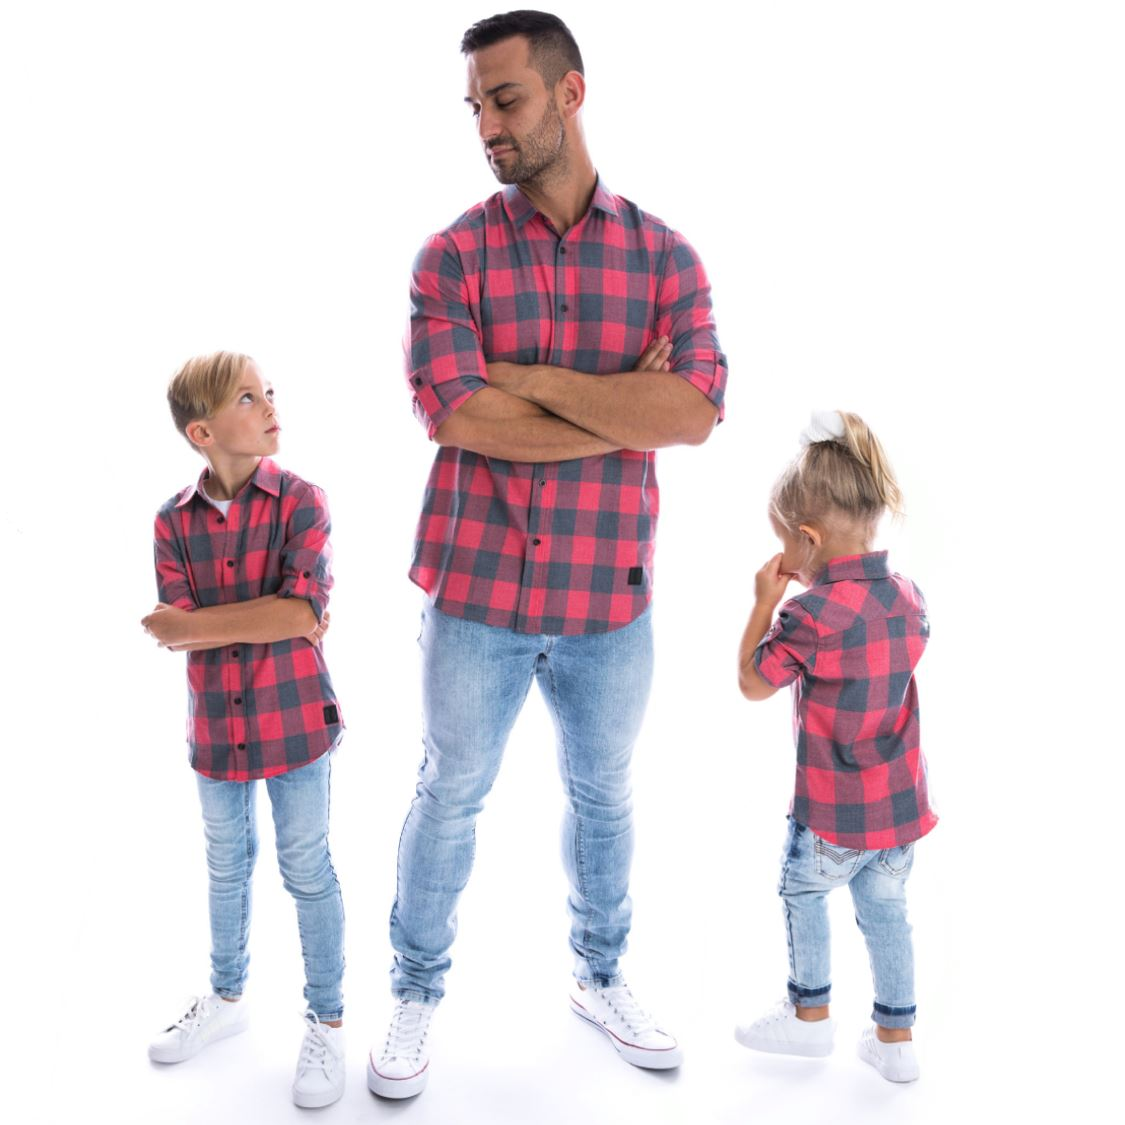 Beau Hudson - Unisex Red and Black Faded Buffalo Shirt (Kids & Adults) Dress Beau Hudson